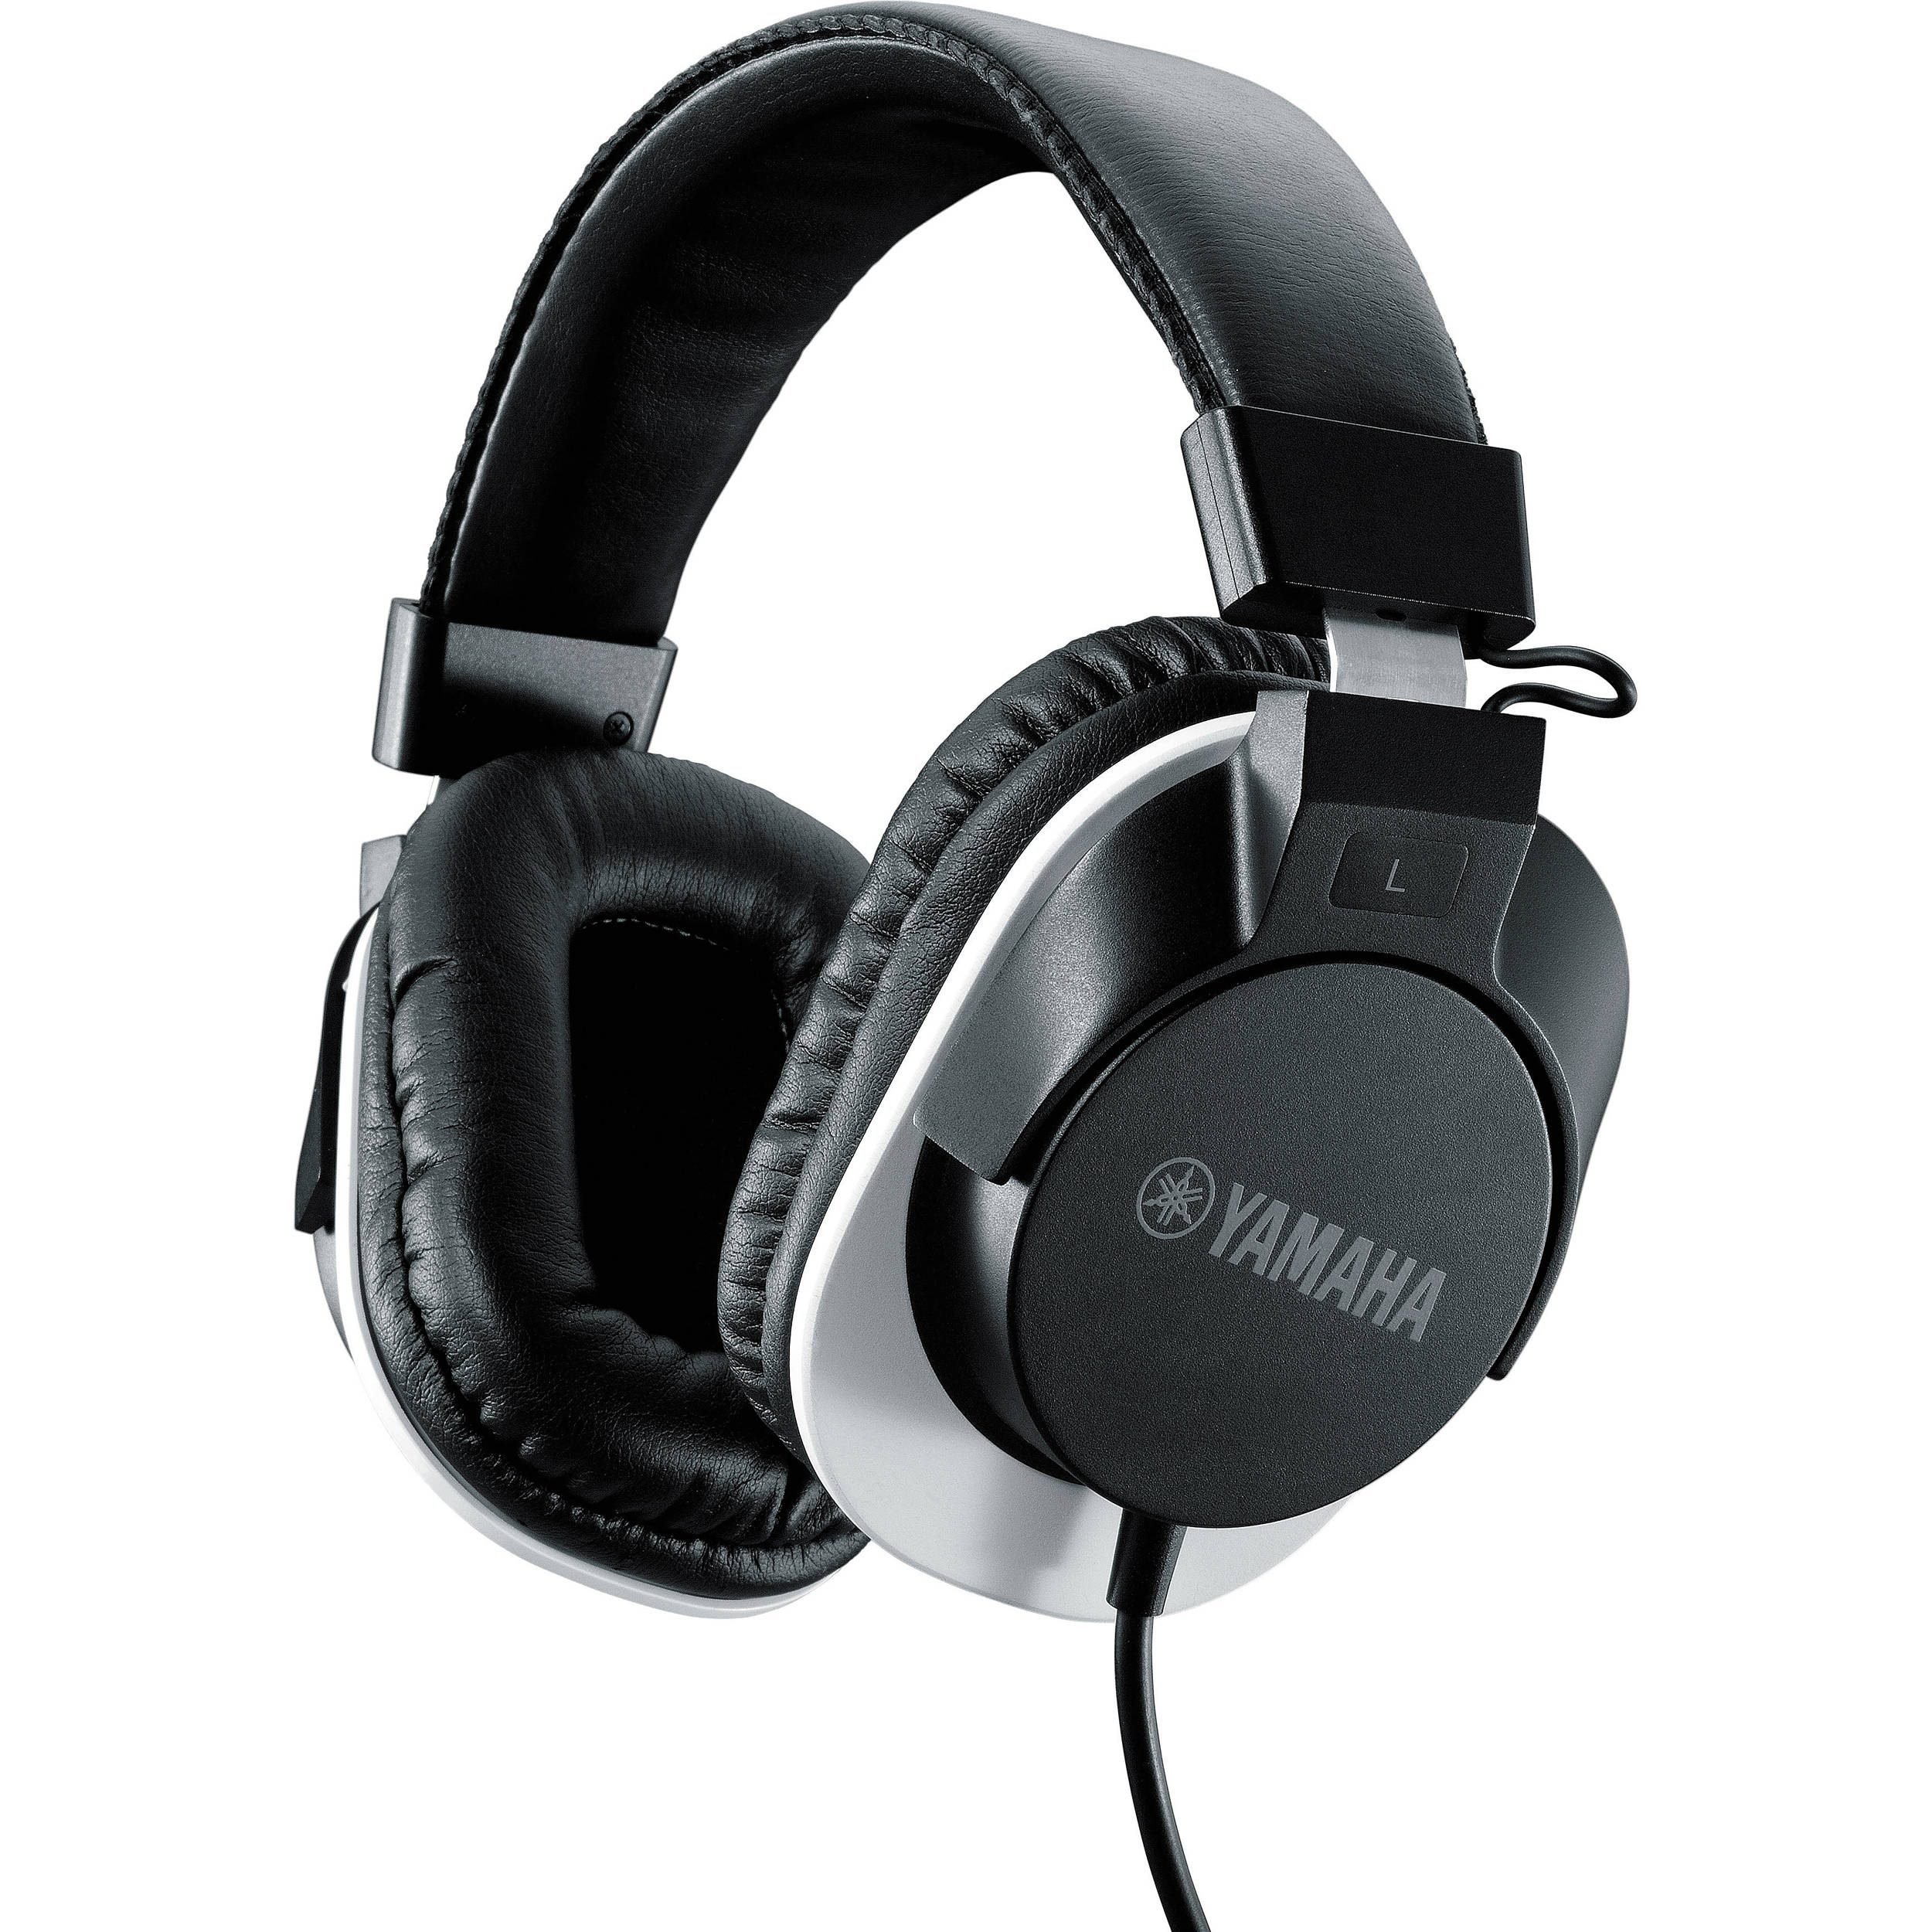 yamaha hph mt120 studio monitor headphones black hph mt120bl